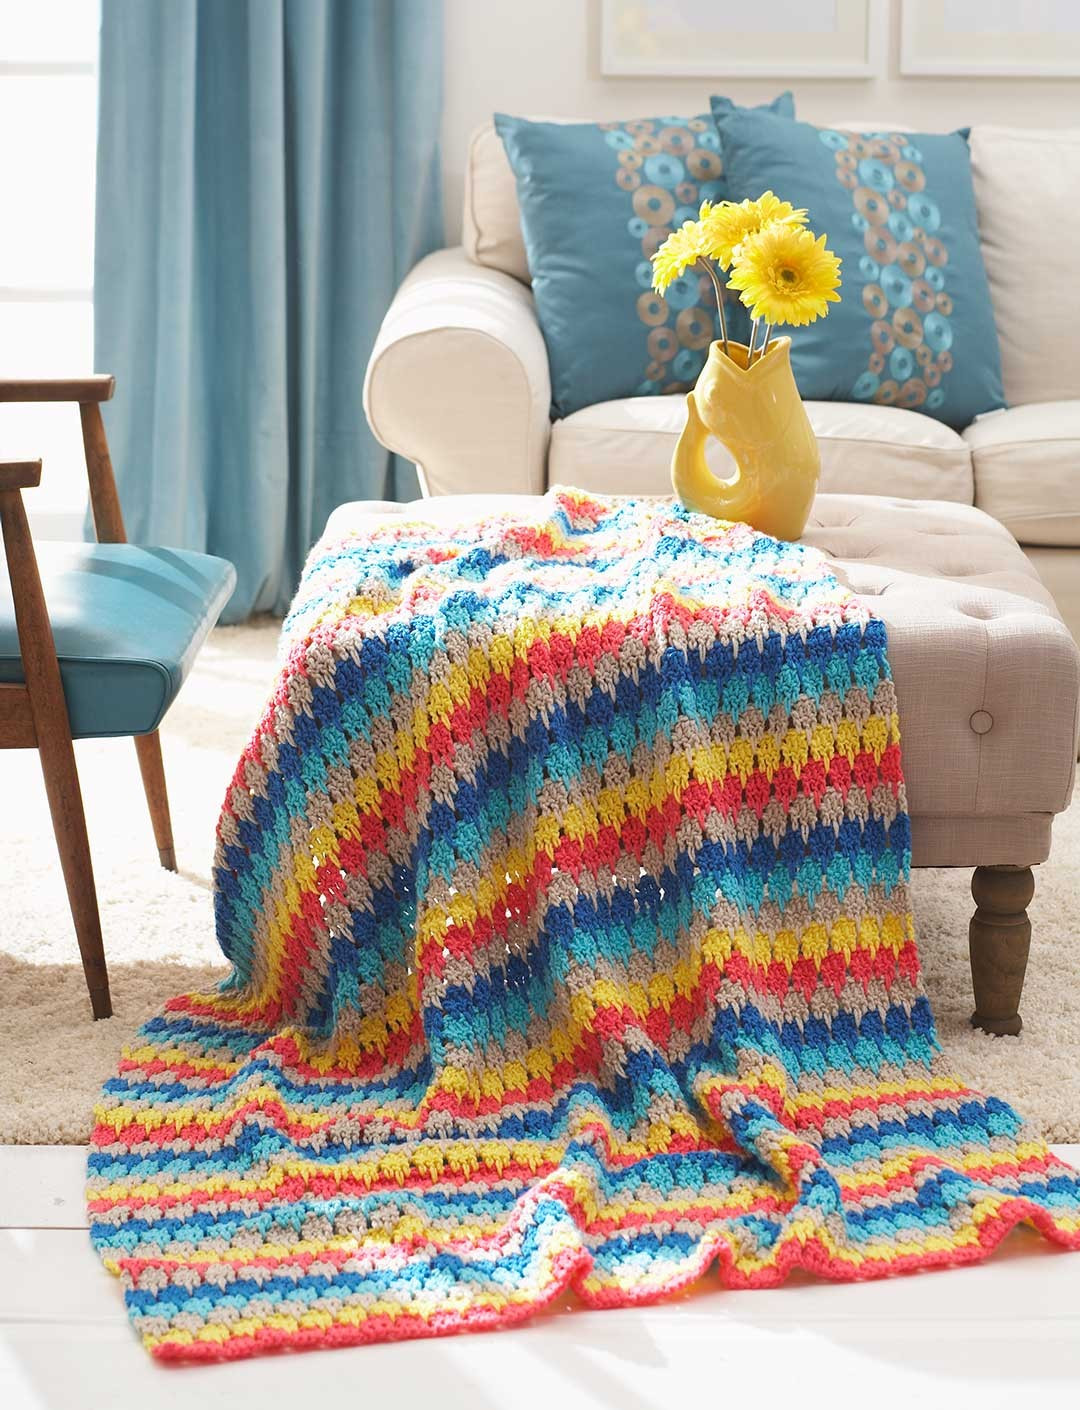 Best Of Bernat Larksfoot Blanket Crochet Pattern Bernat Free Patterns Of Fresh 47 Photos Bernat Free Patterns